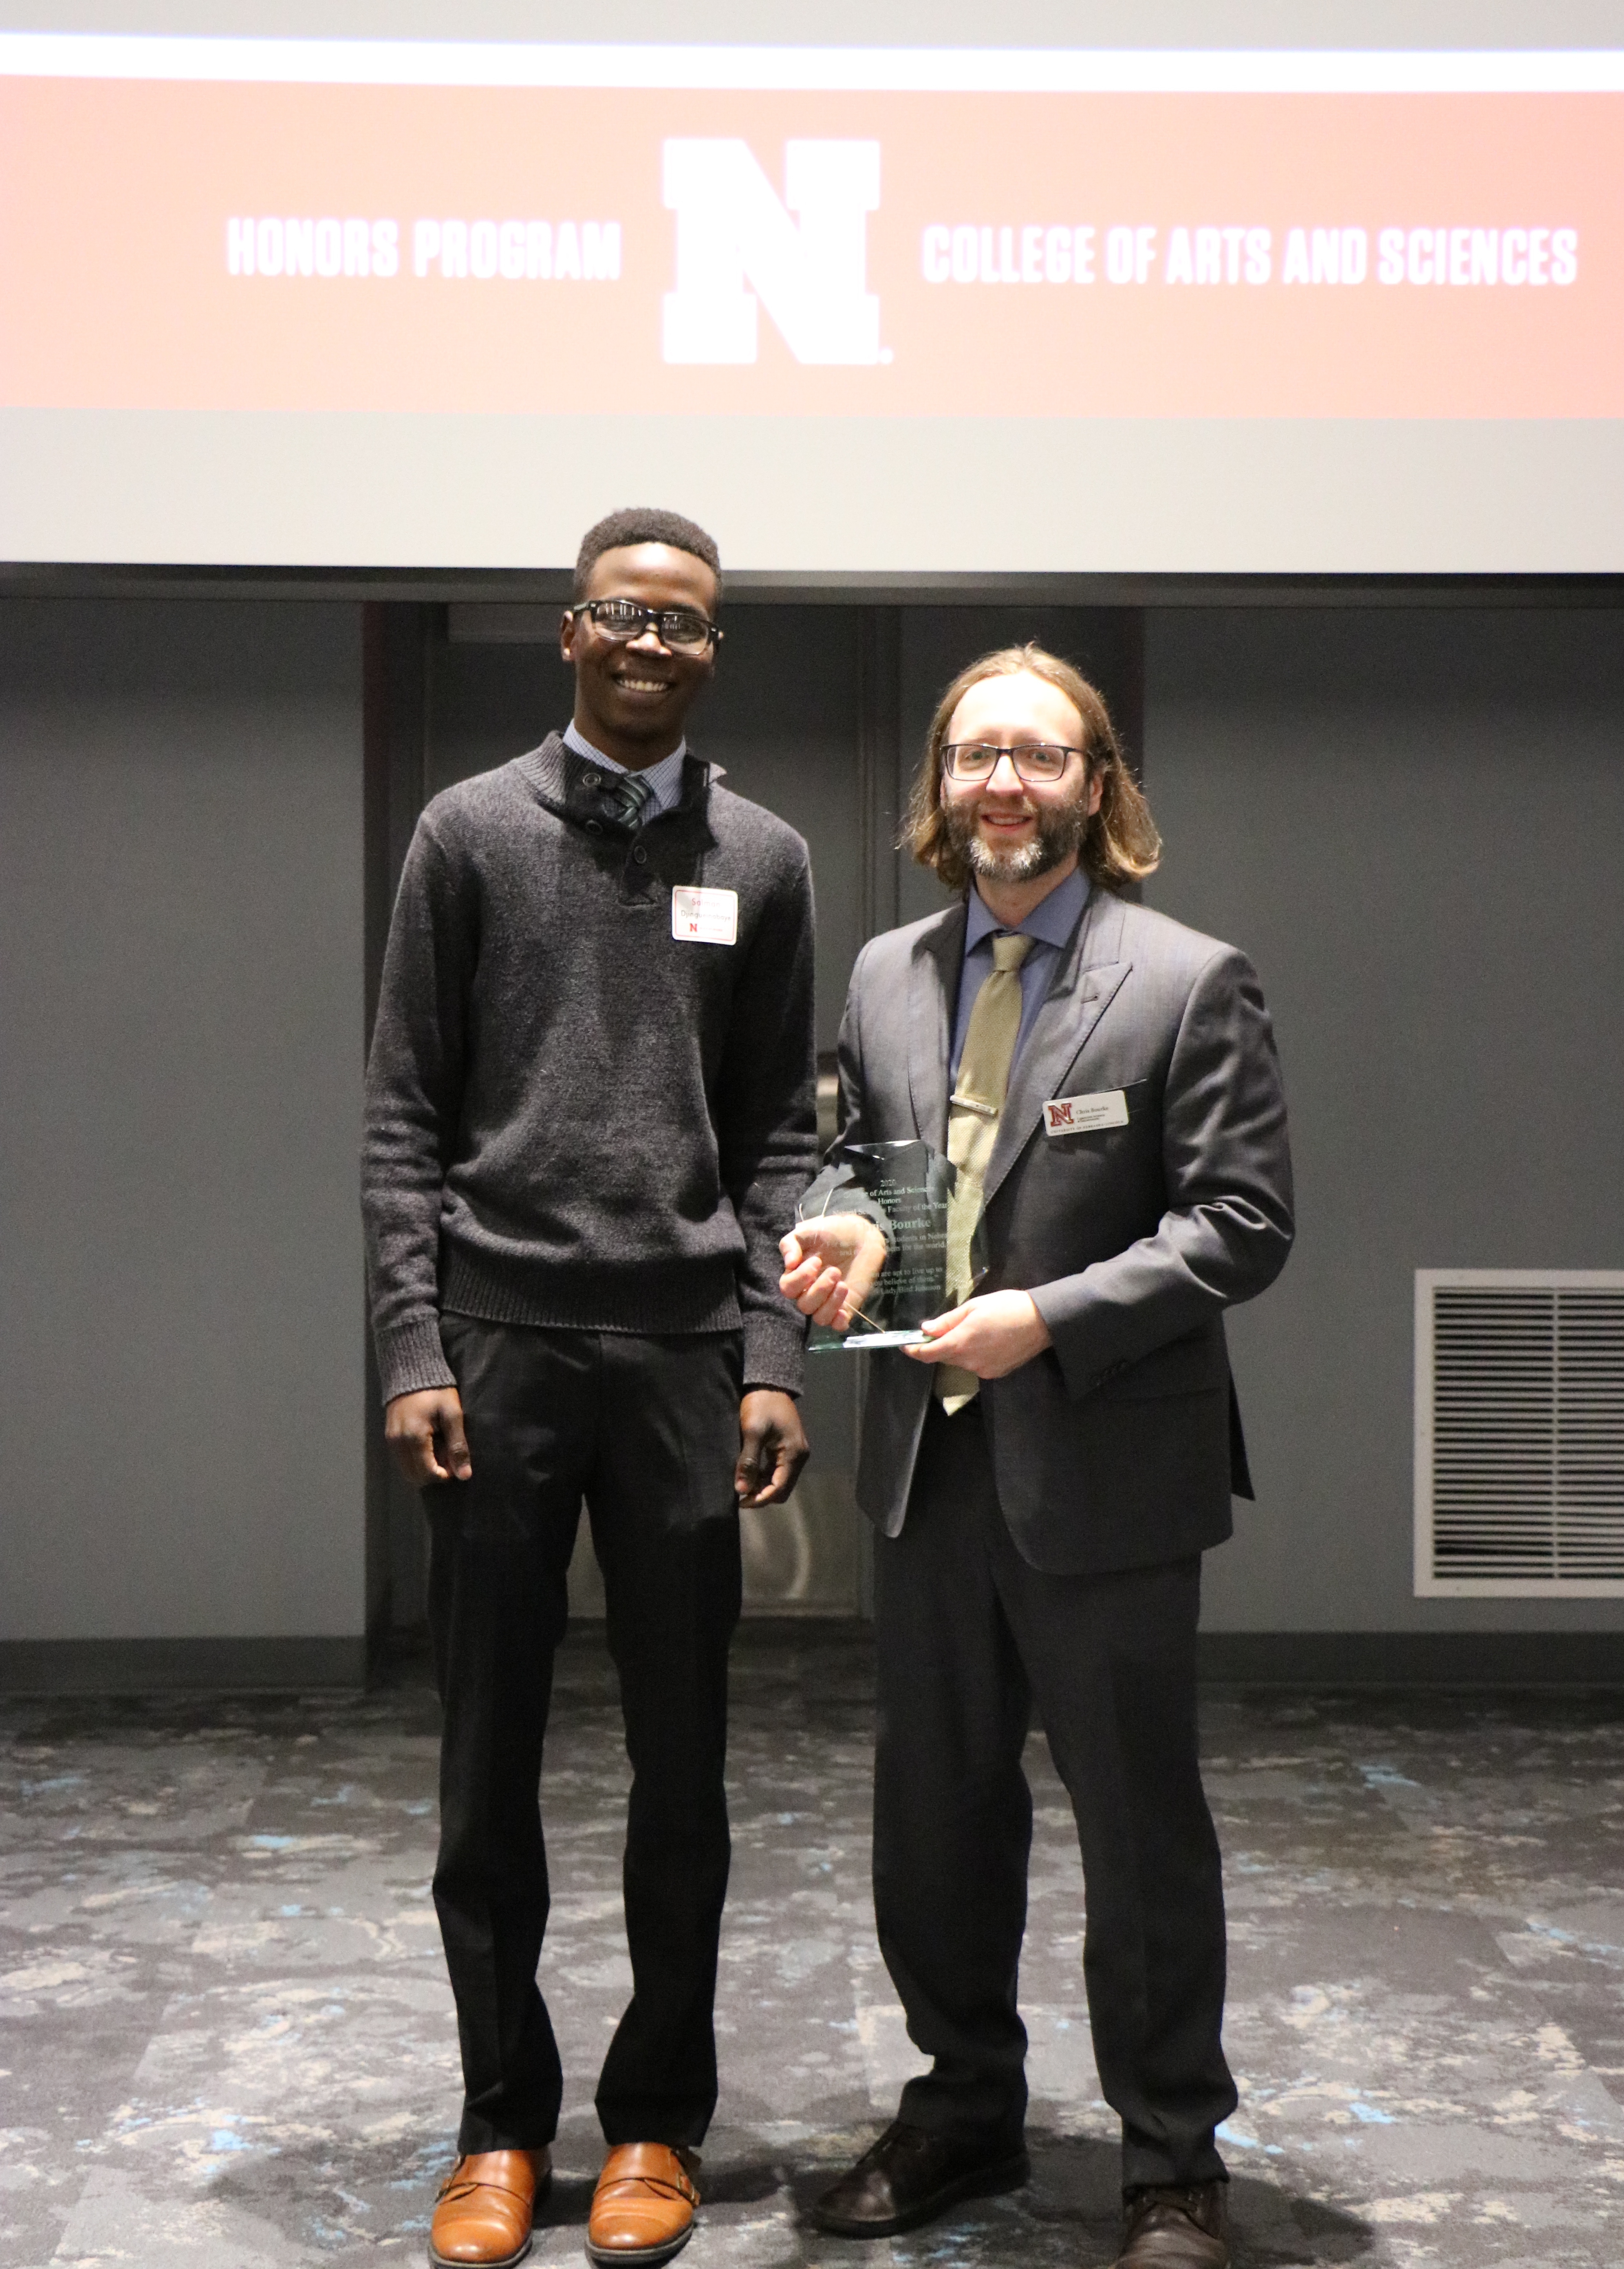 Chris Bourke accepting his award at yesterday's CAS Honors ceremony with computer science student speaker Salman Djingueinabaye.